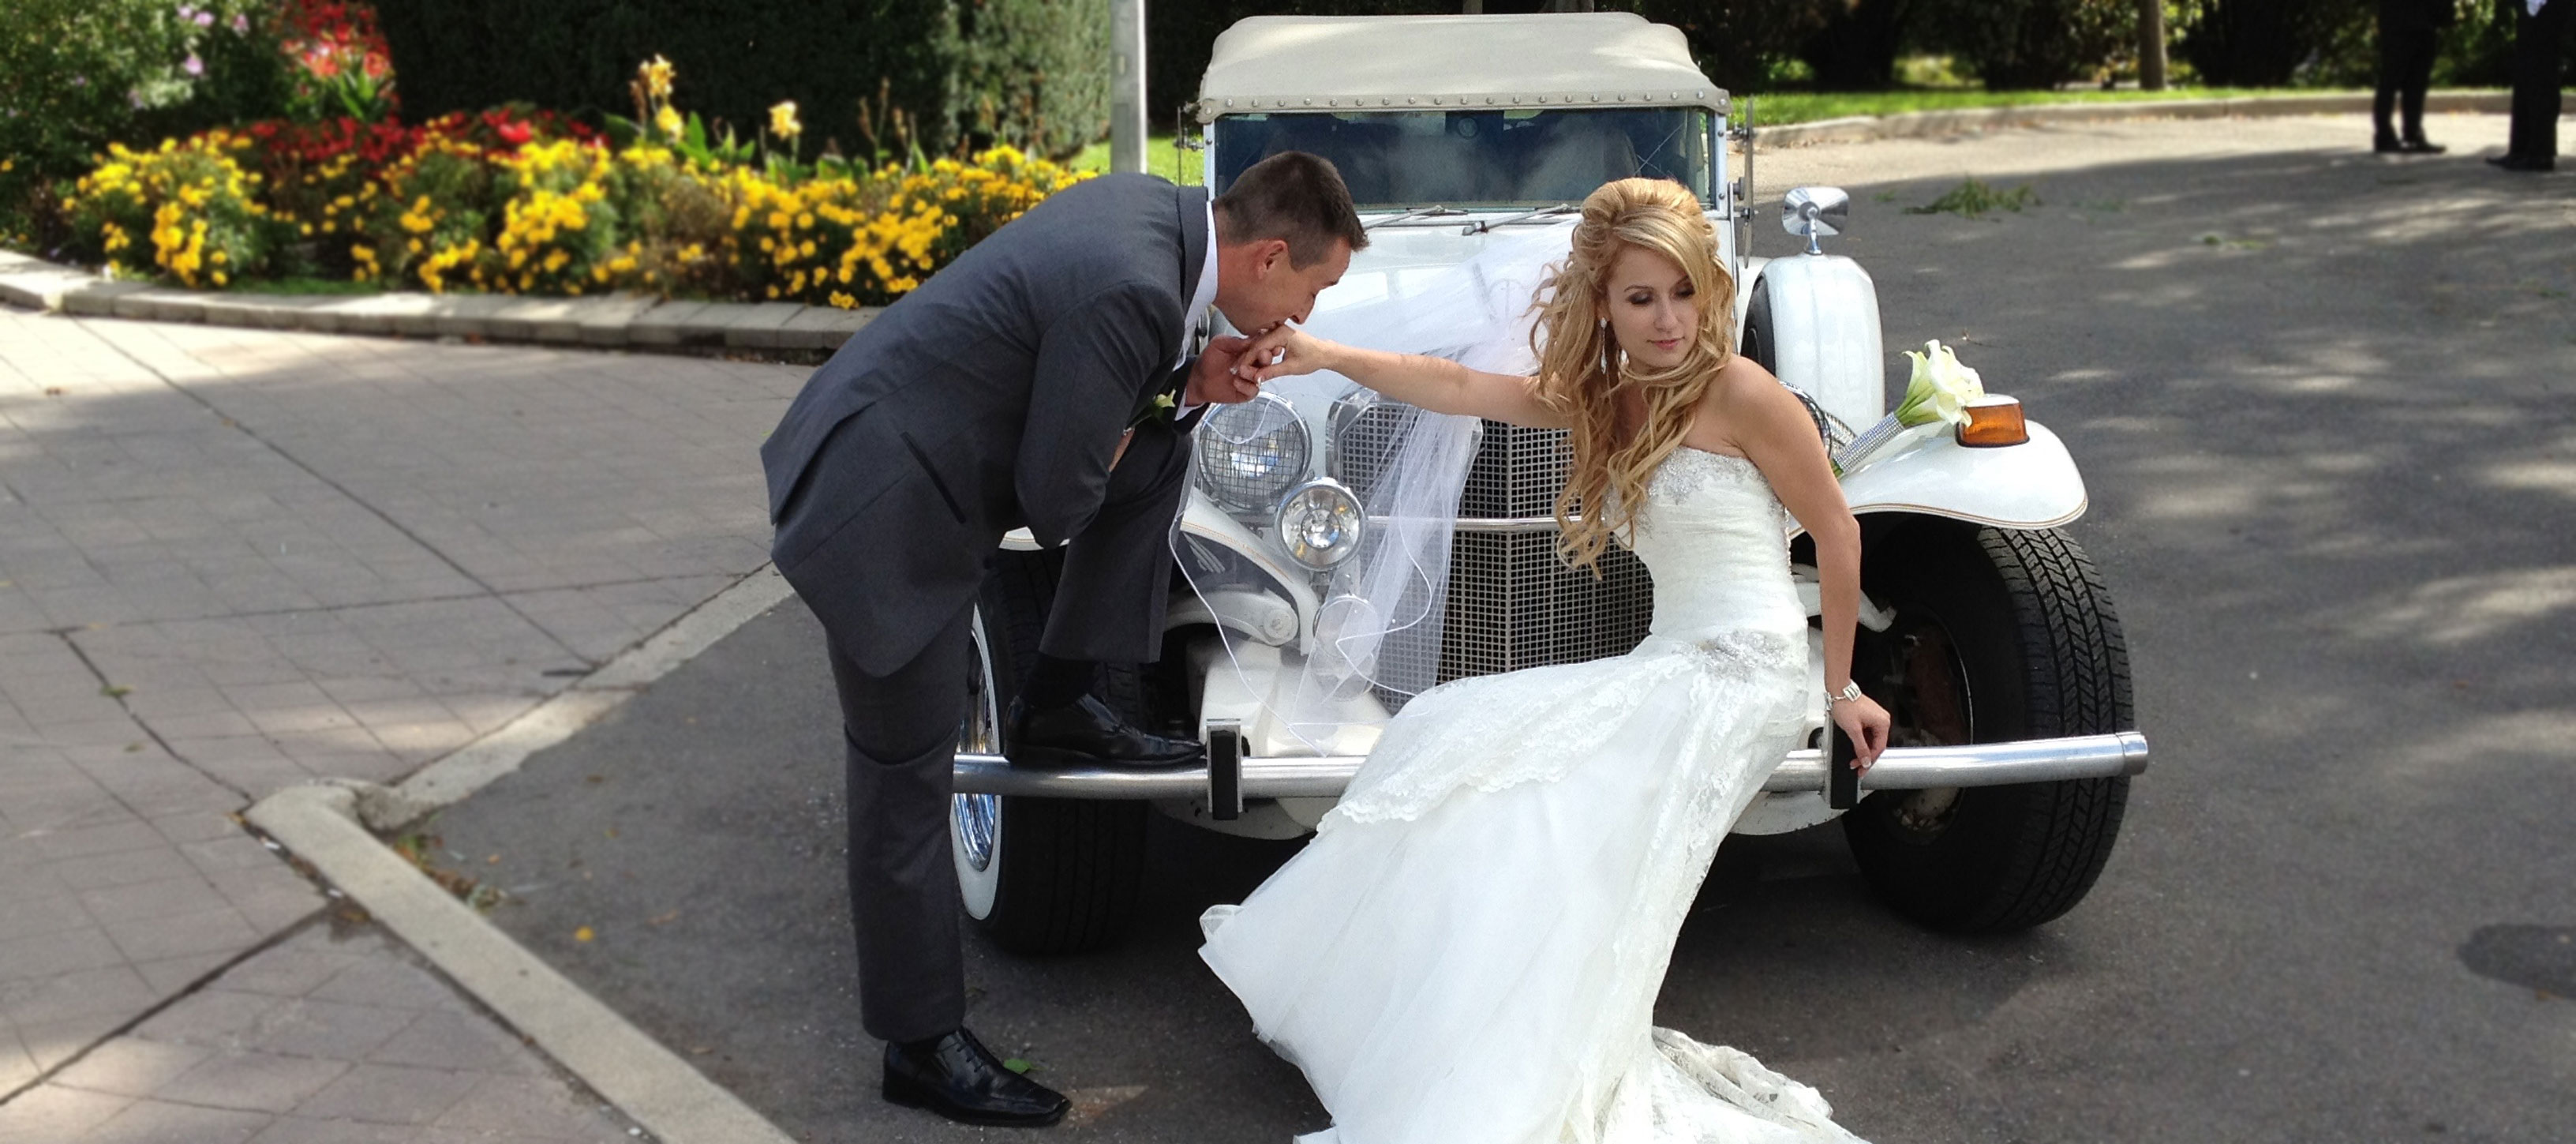 Toronto Wedding Limousines: Serving All of Ontario